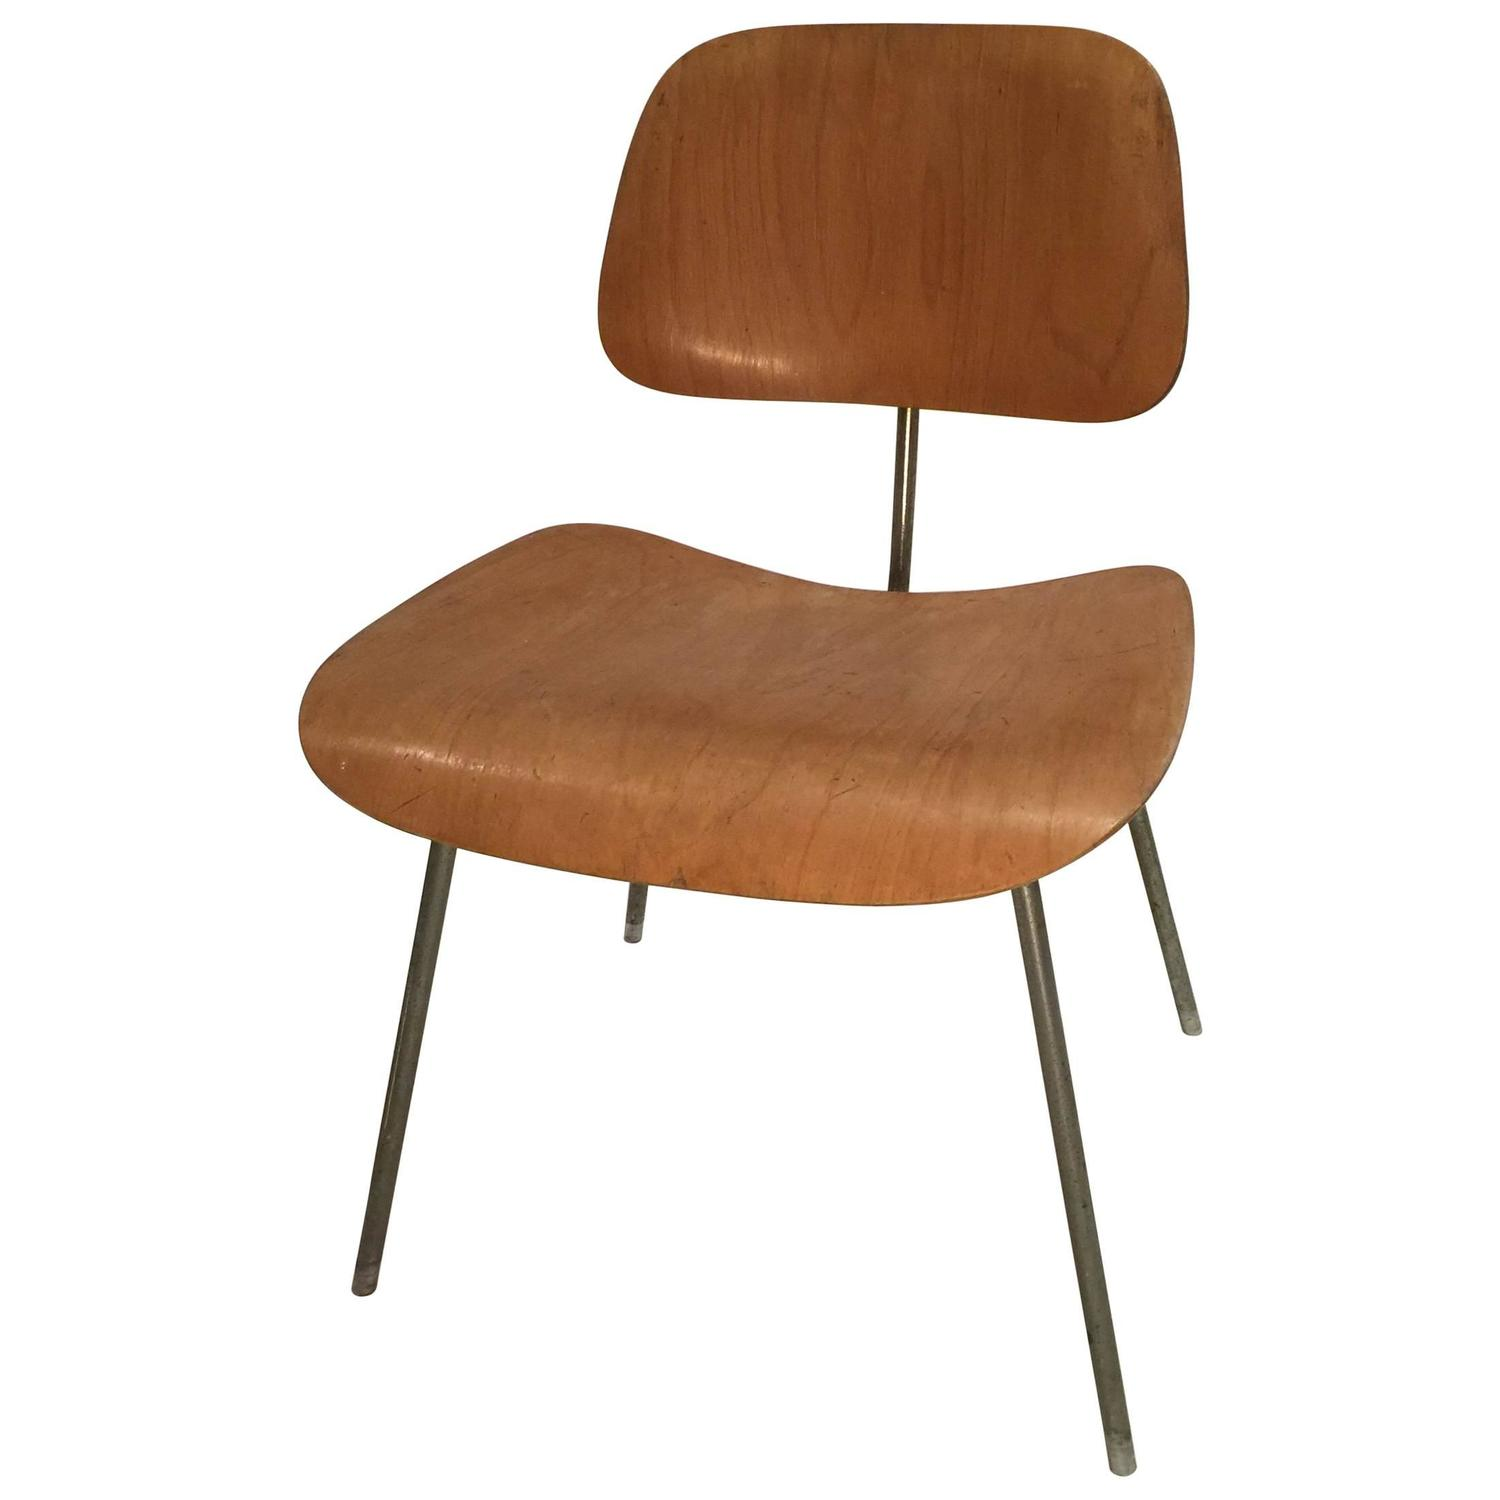 1950s herman miller eames dcm dining chair